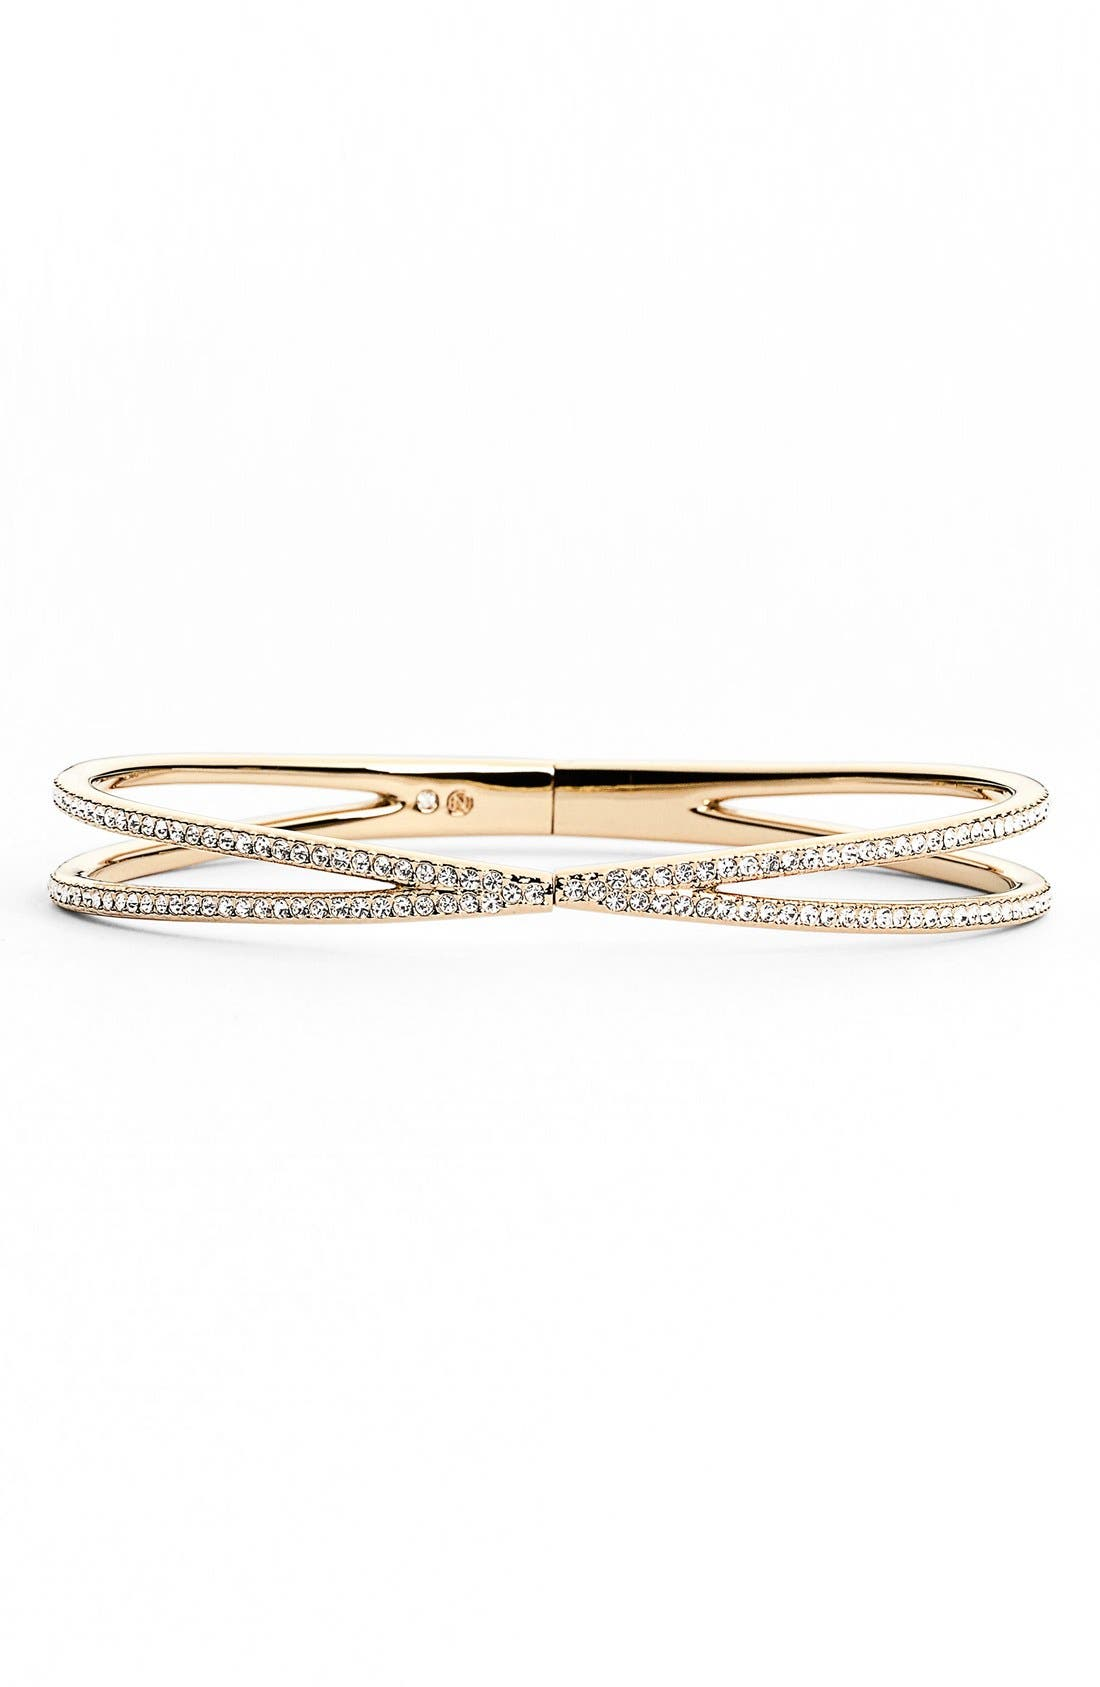 Main Image - Nadri Pavé Hinged Crossover Bracelet (Nordstrom Exclusive)